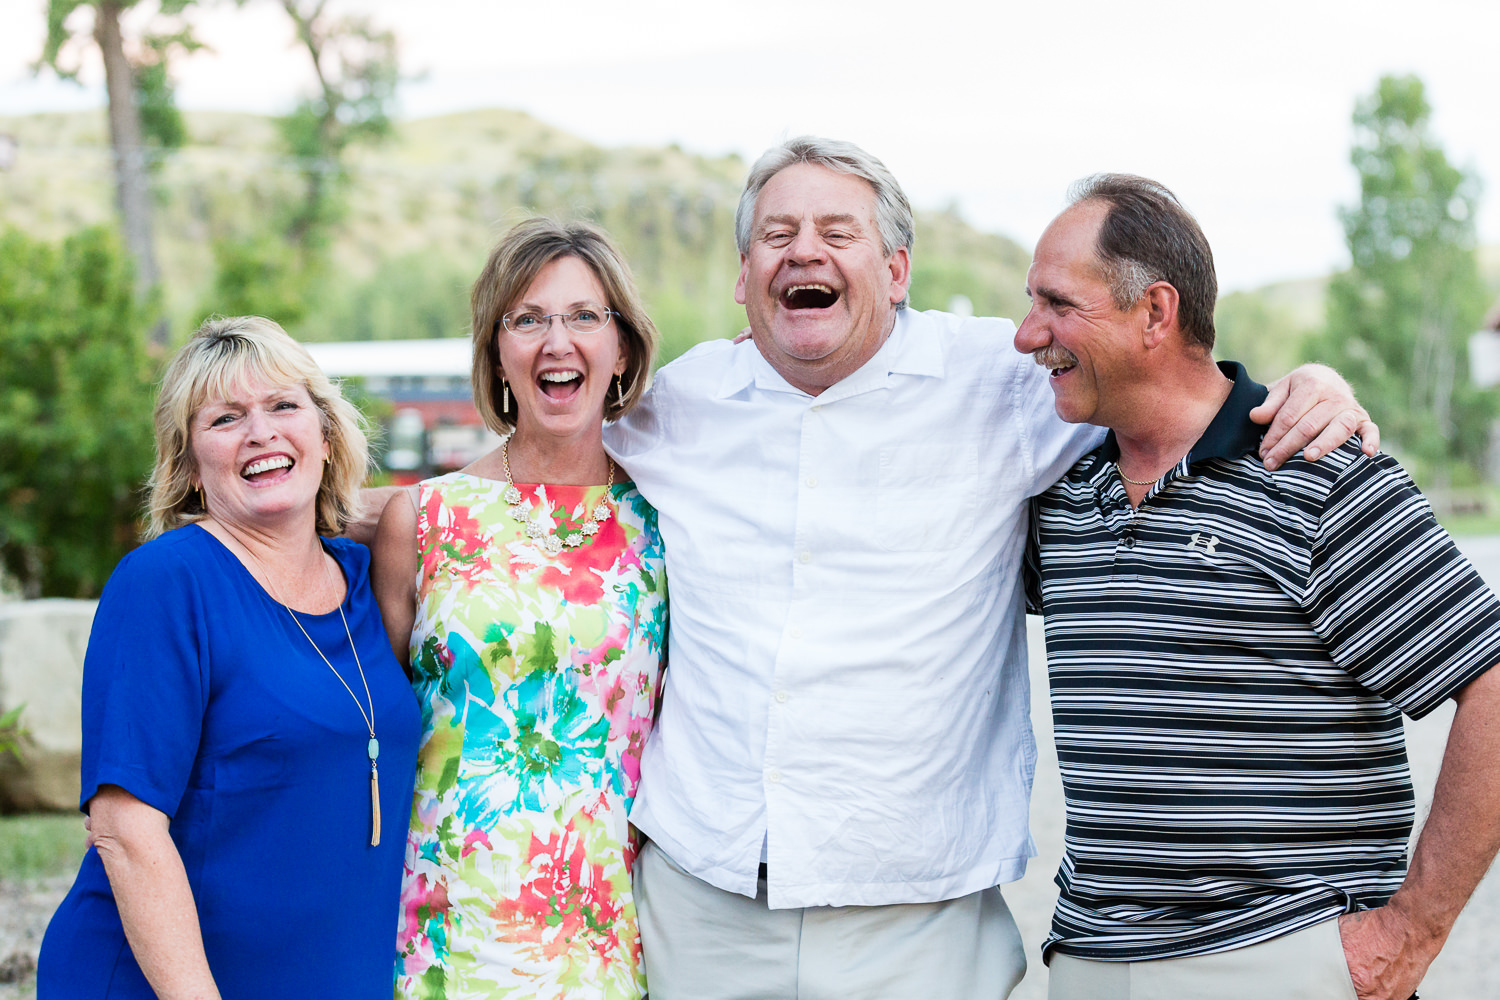 billings-montana-swift-river-ranch-wedding-reception-guests-laughing-at-sunset.jpg